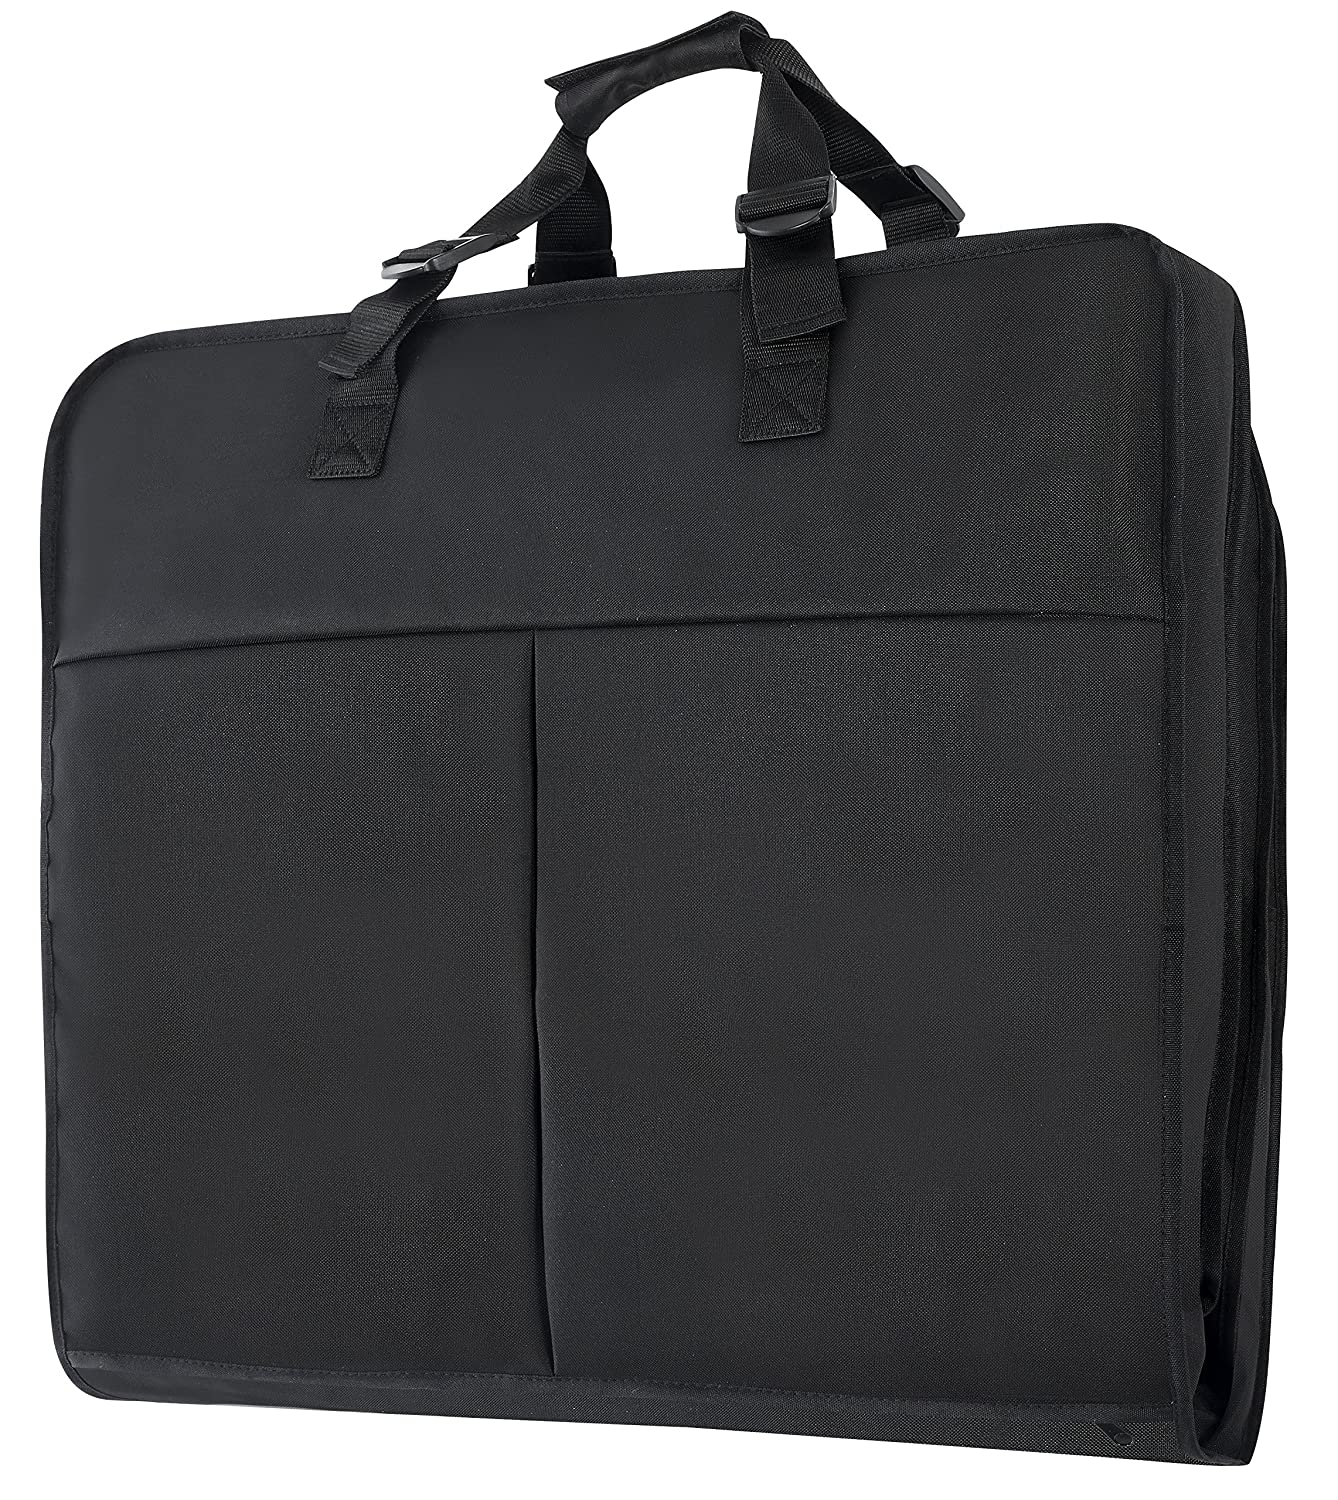 Magictodoor 40 Inch Garment Bag Extra Capacity Garment Bag with Pockets w/Hanging Hook Garment Bag Black